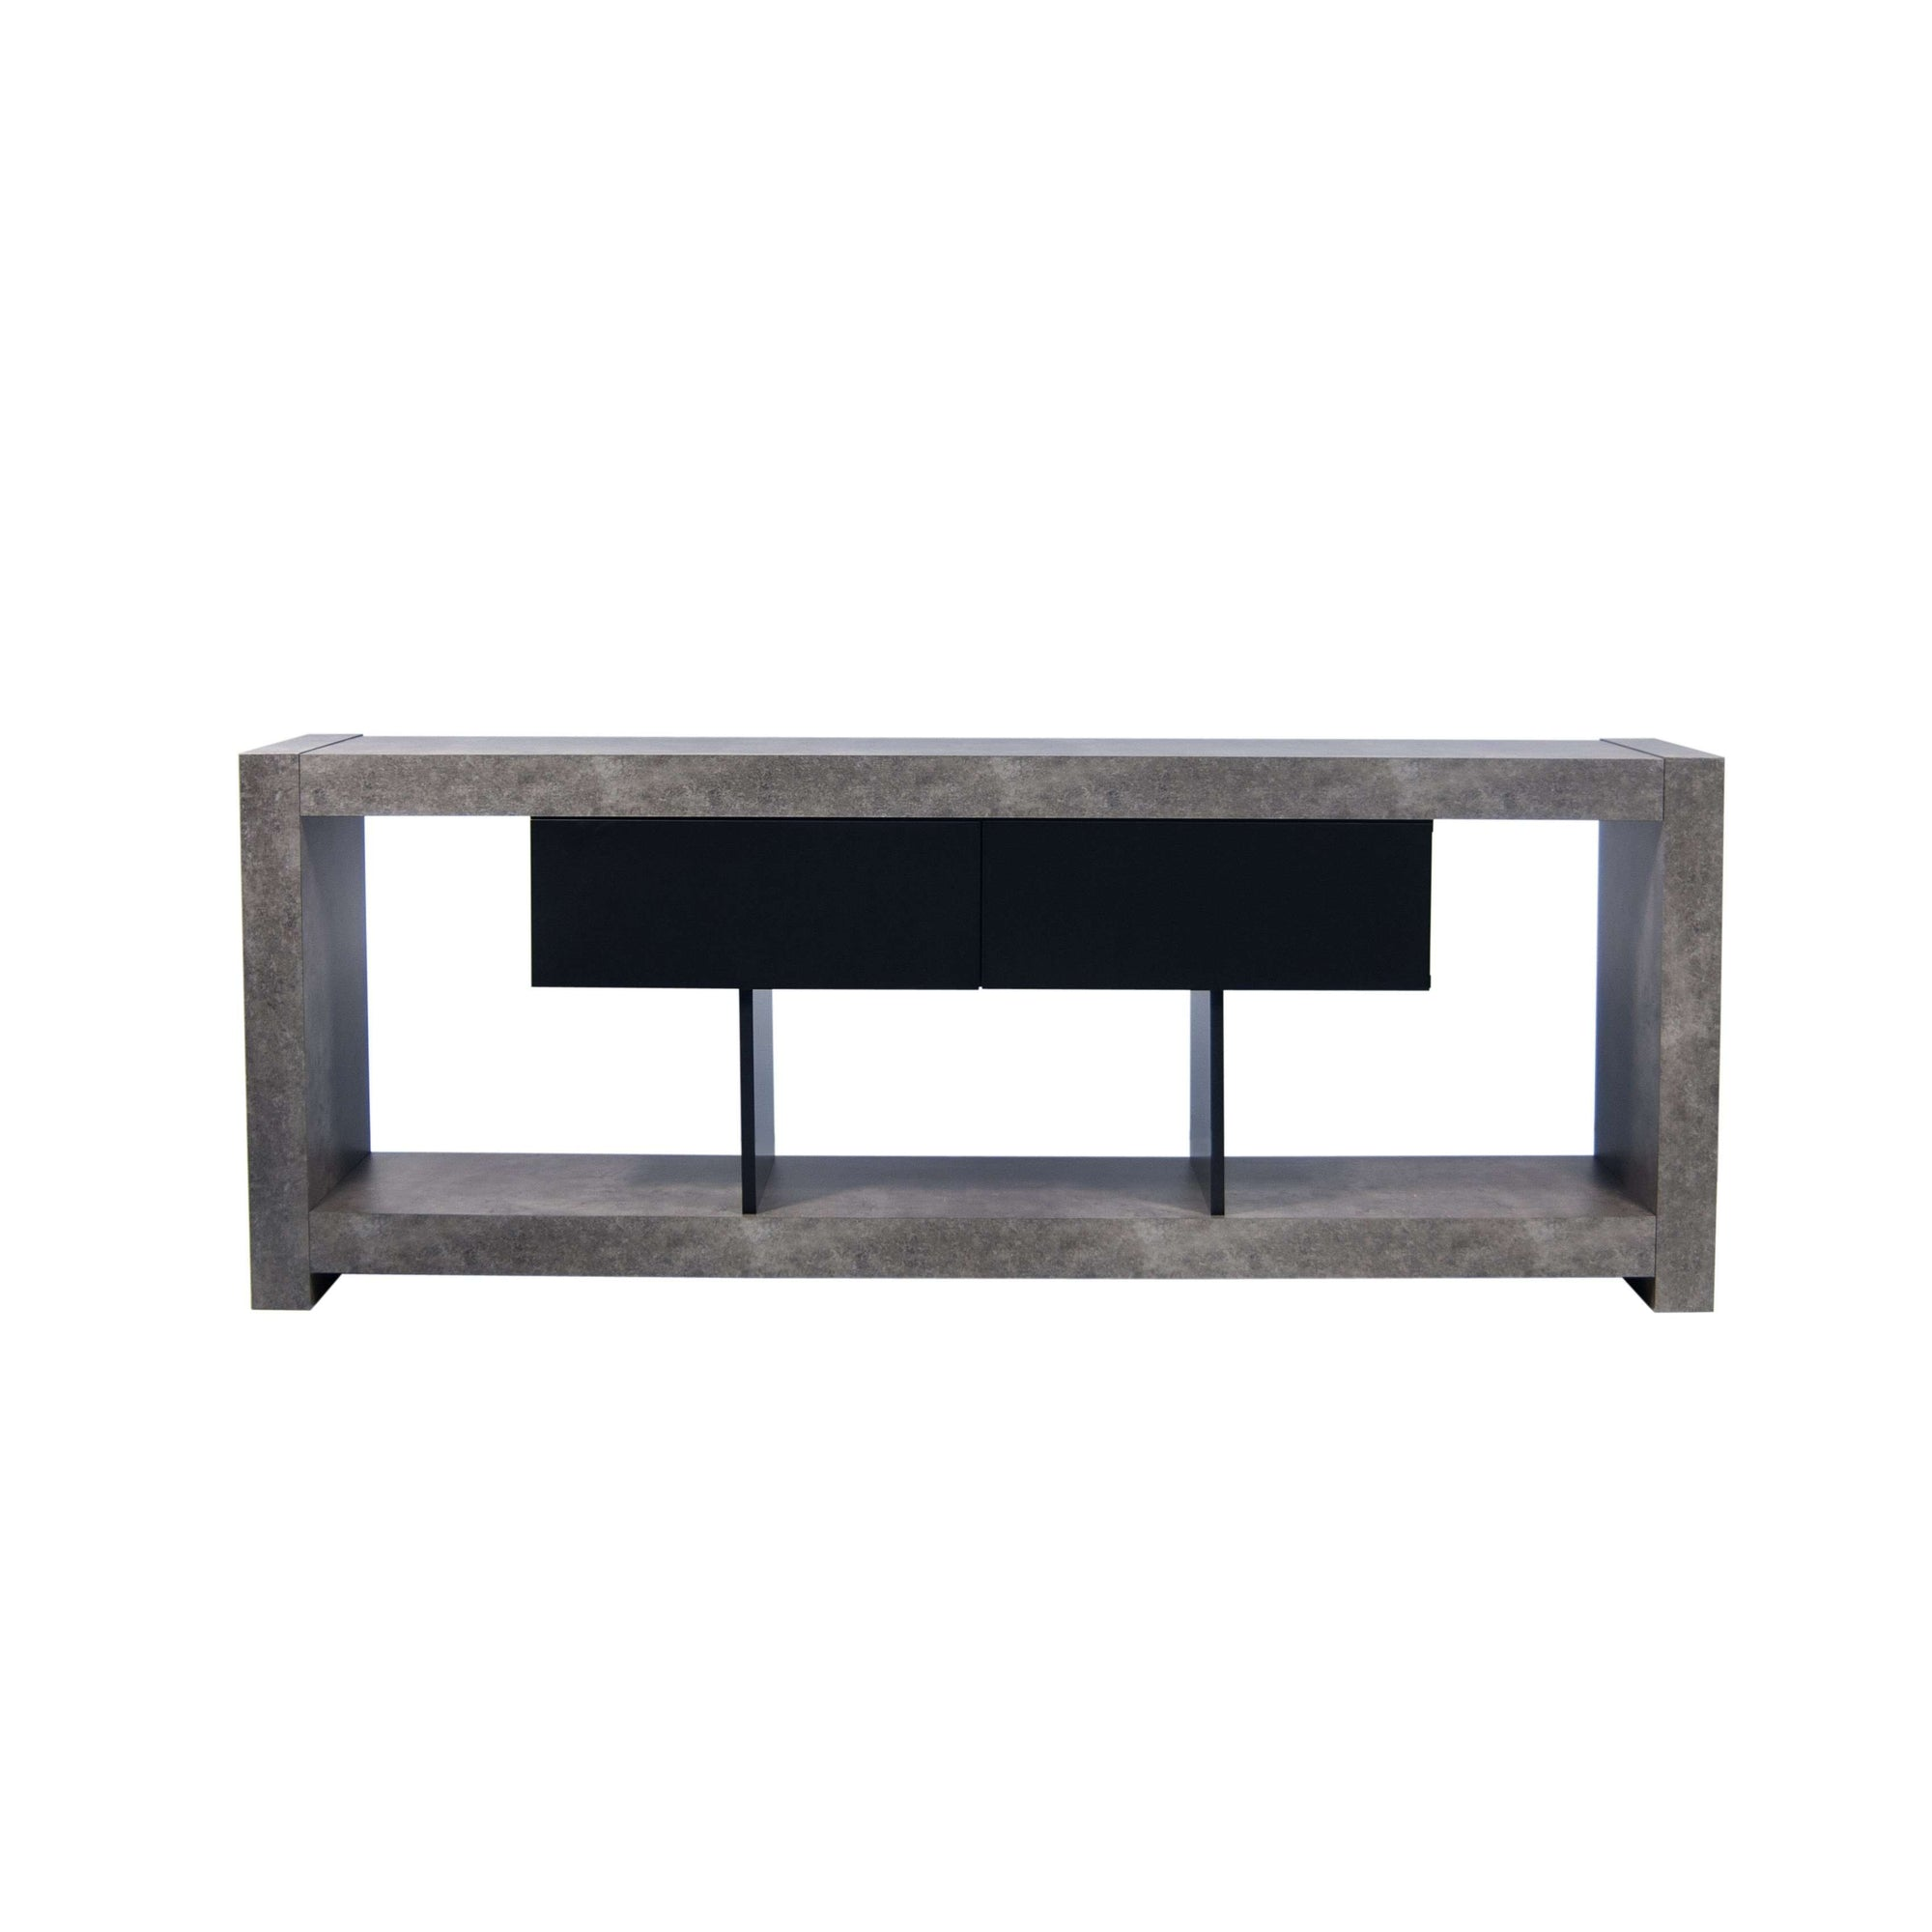 Tema Home-Nara Tv Bench 051044-NARATV-TV Stand-MODTEMPO